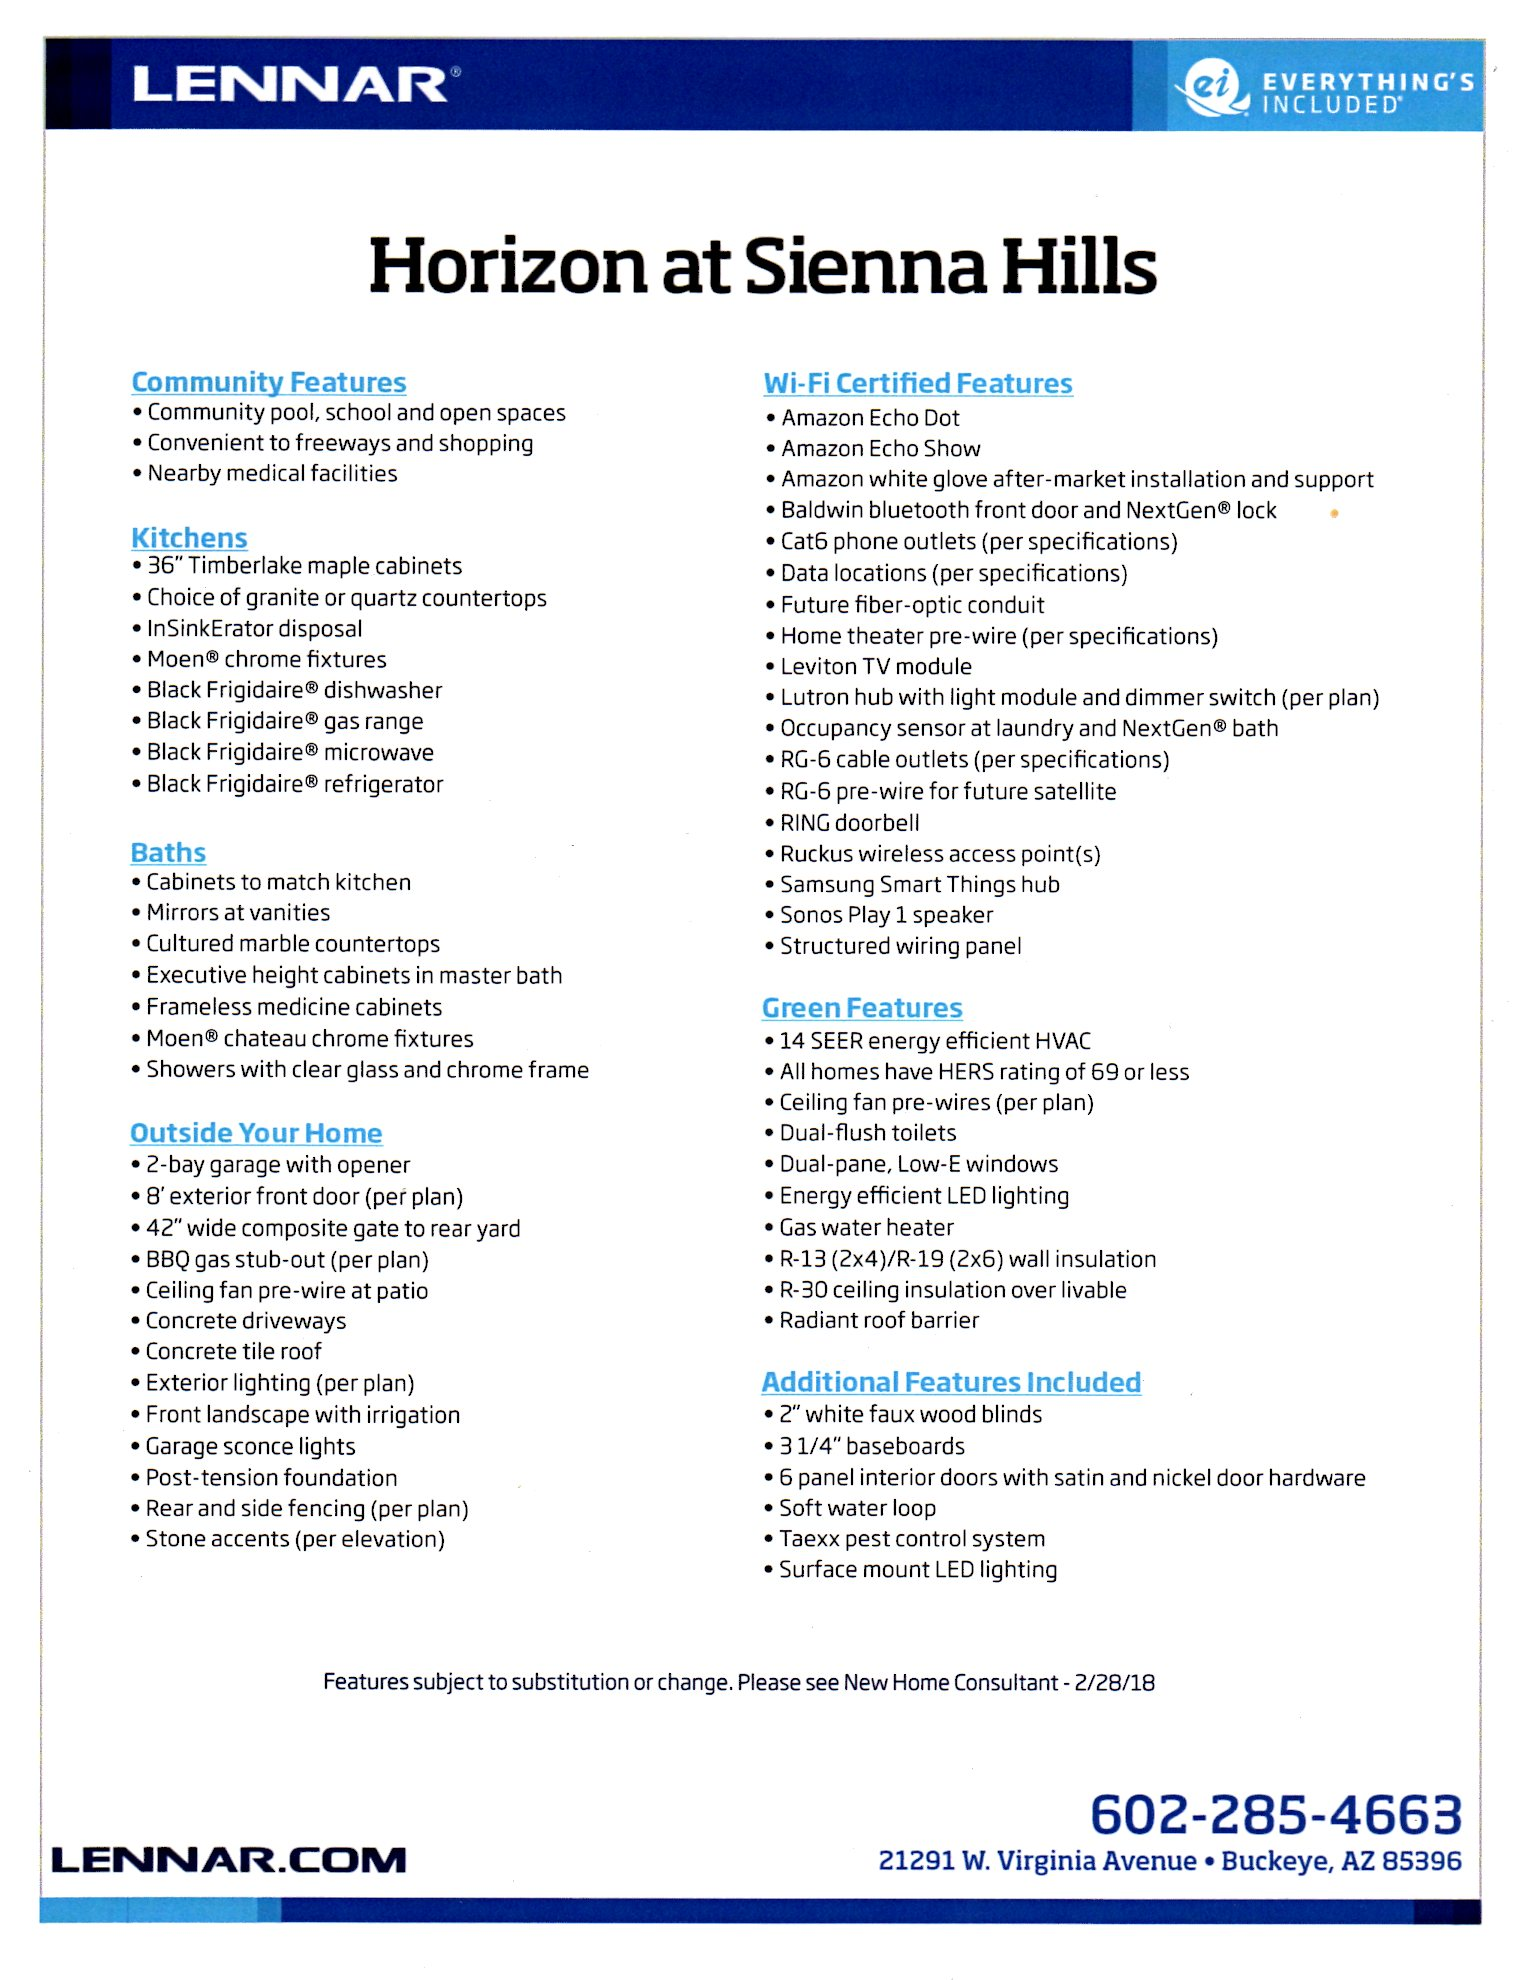 LENNAR HOMES - Horizon at Sienna Hills